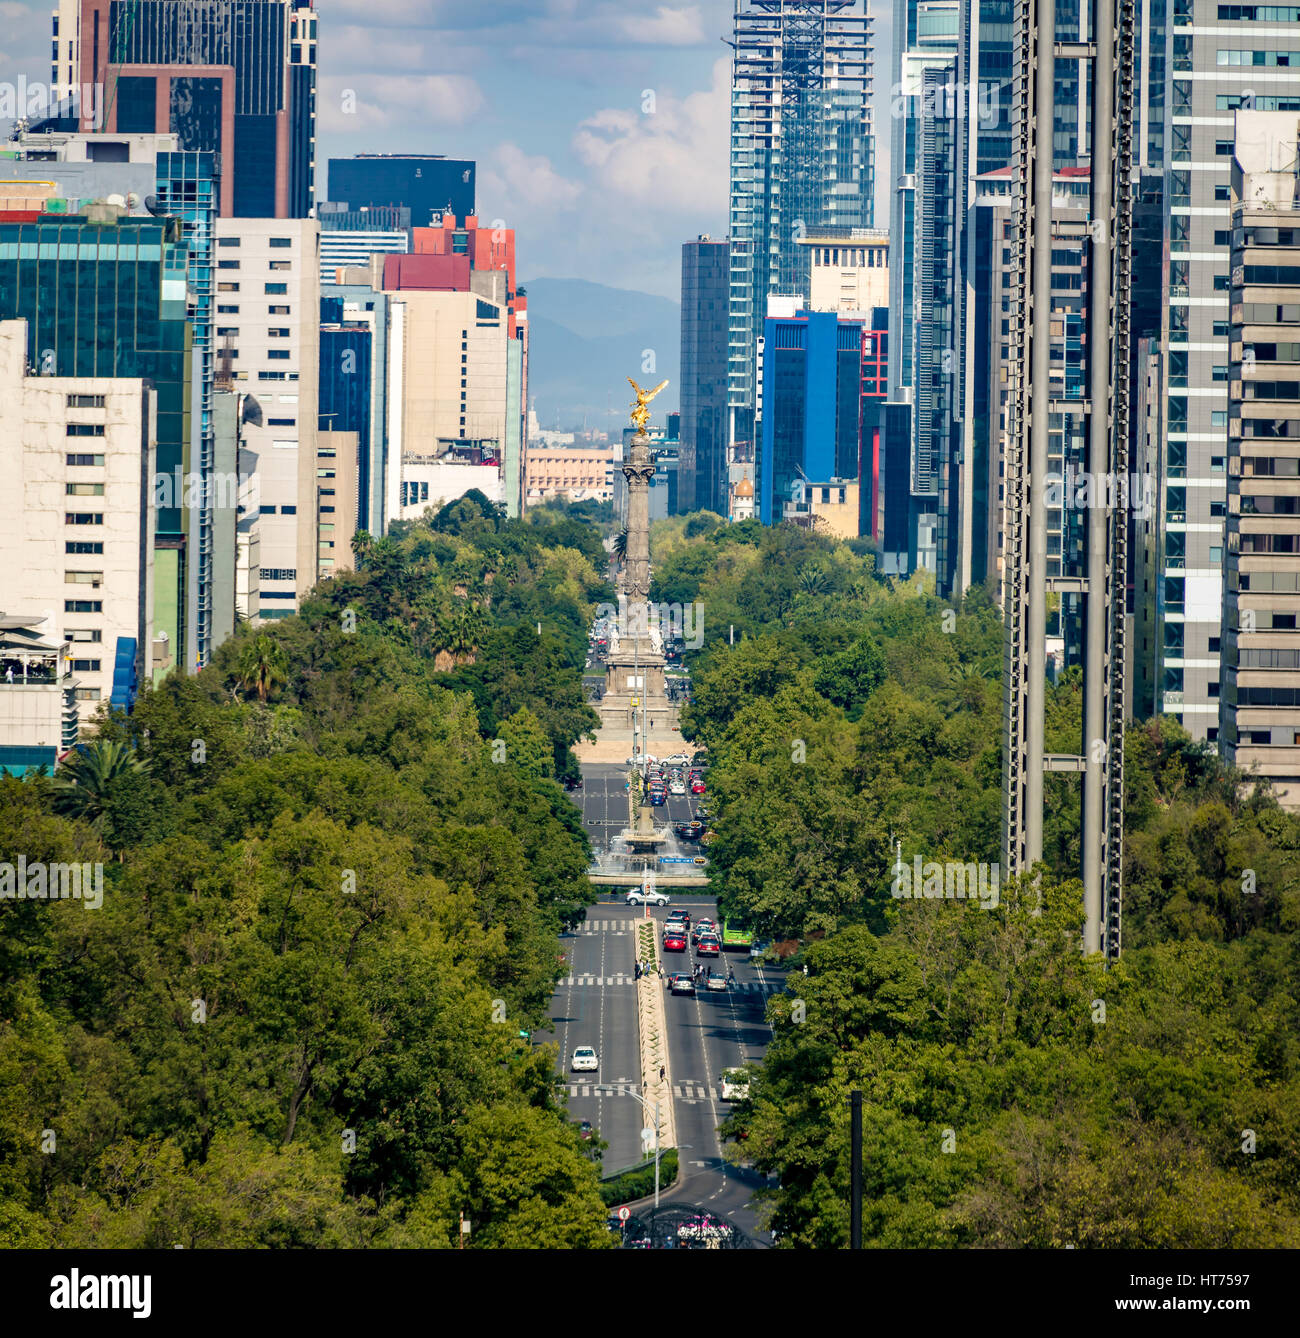 View from above of Paseo de La Reforma avenue and Angel of Independence Monument - Mexico City, Mexico - Stock Image